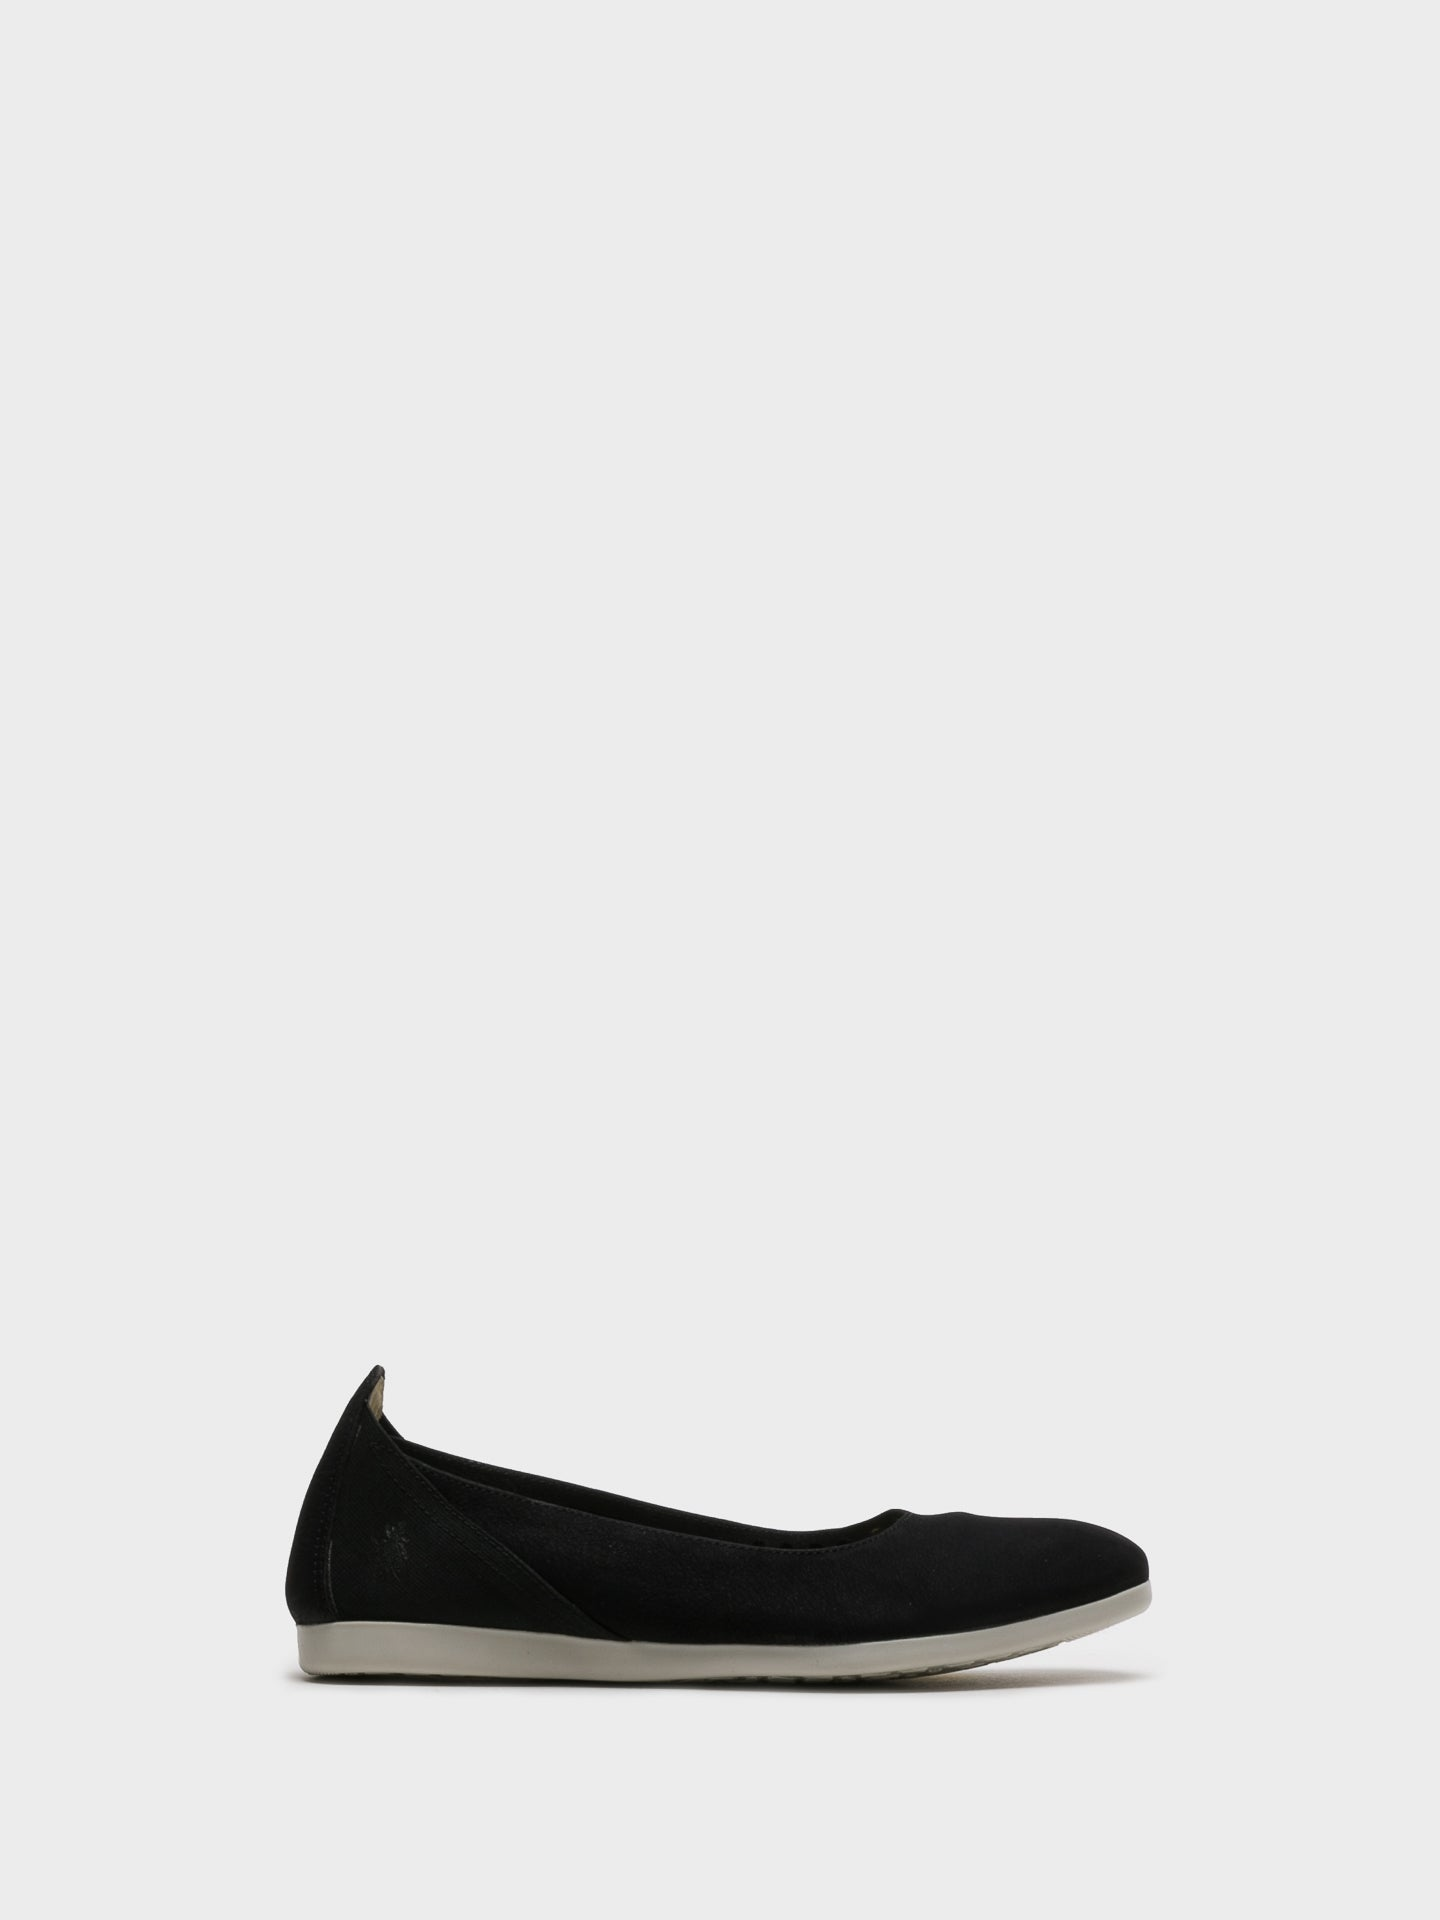 Fly London Black Elasticated Ballerinas